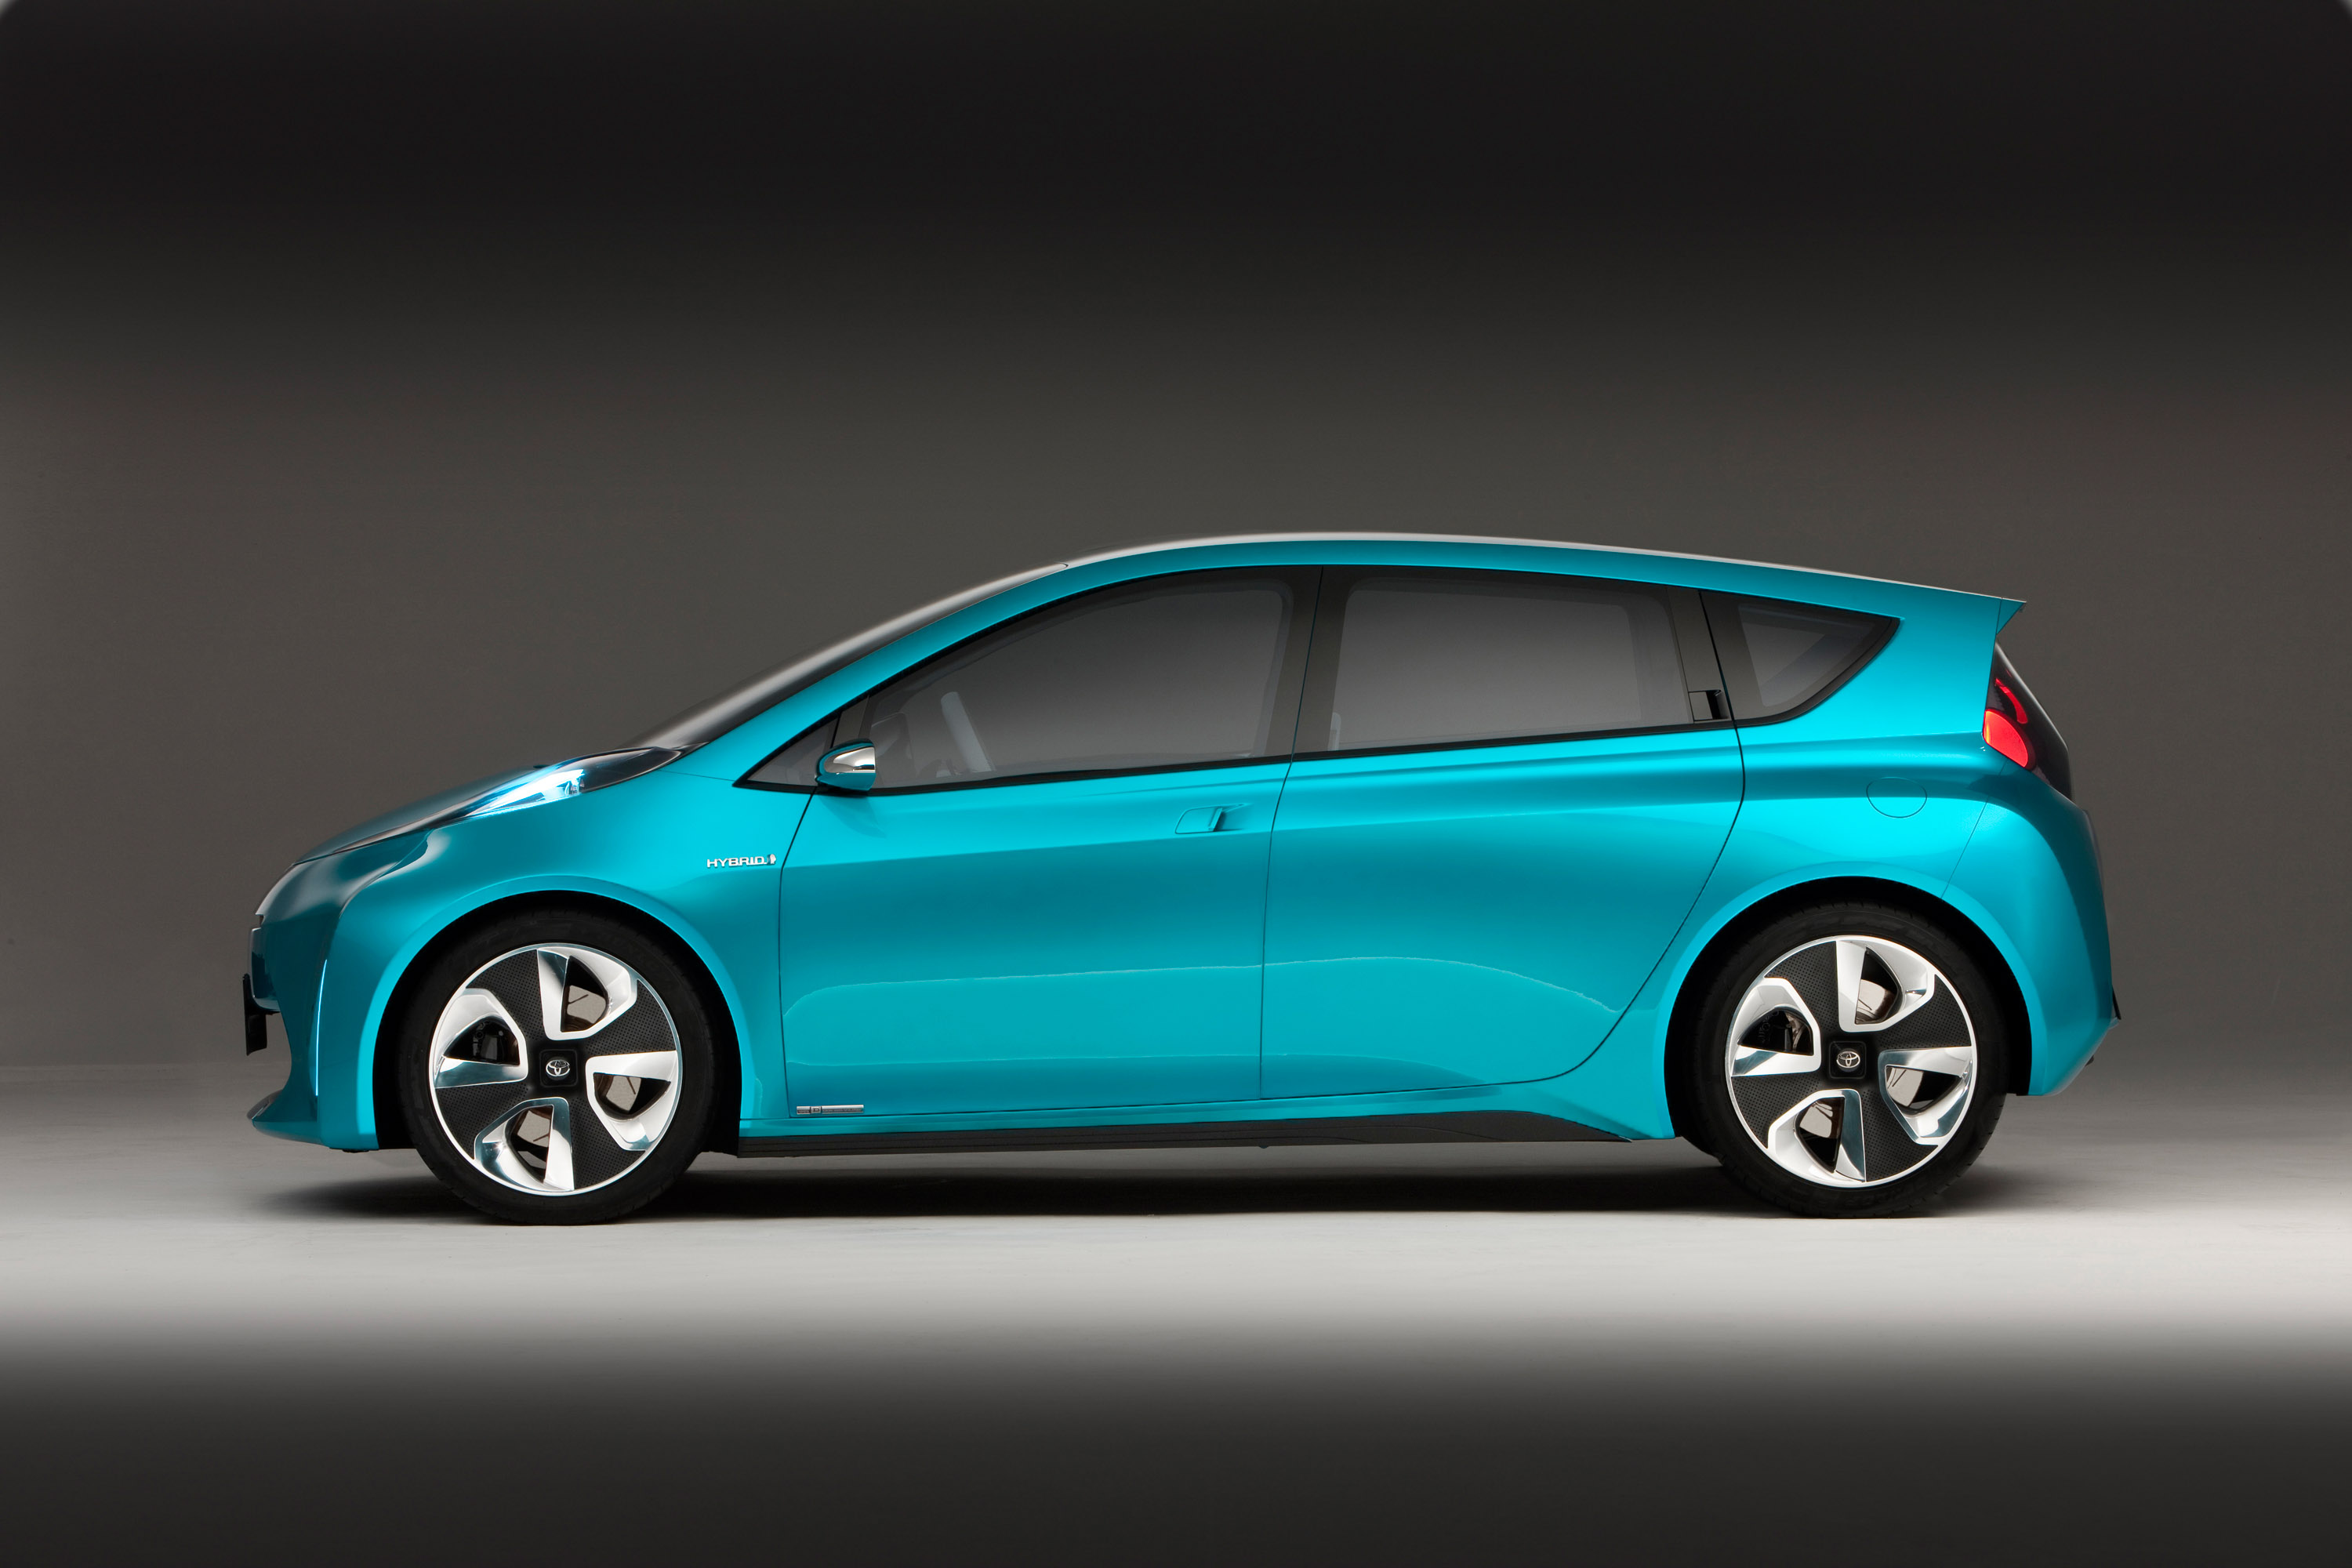 Toyota Prius Concept Cars Wallpapers & pics